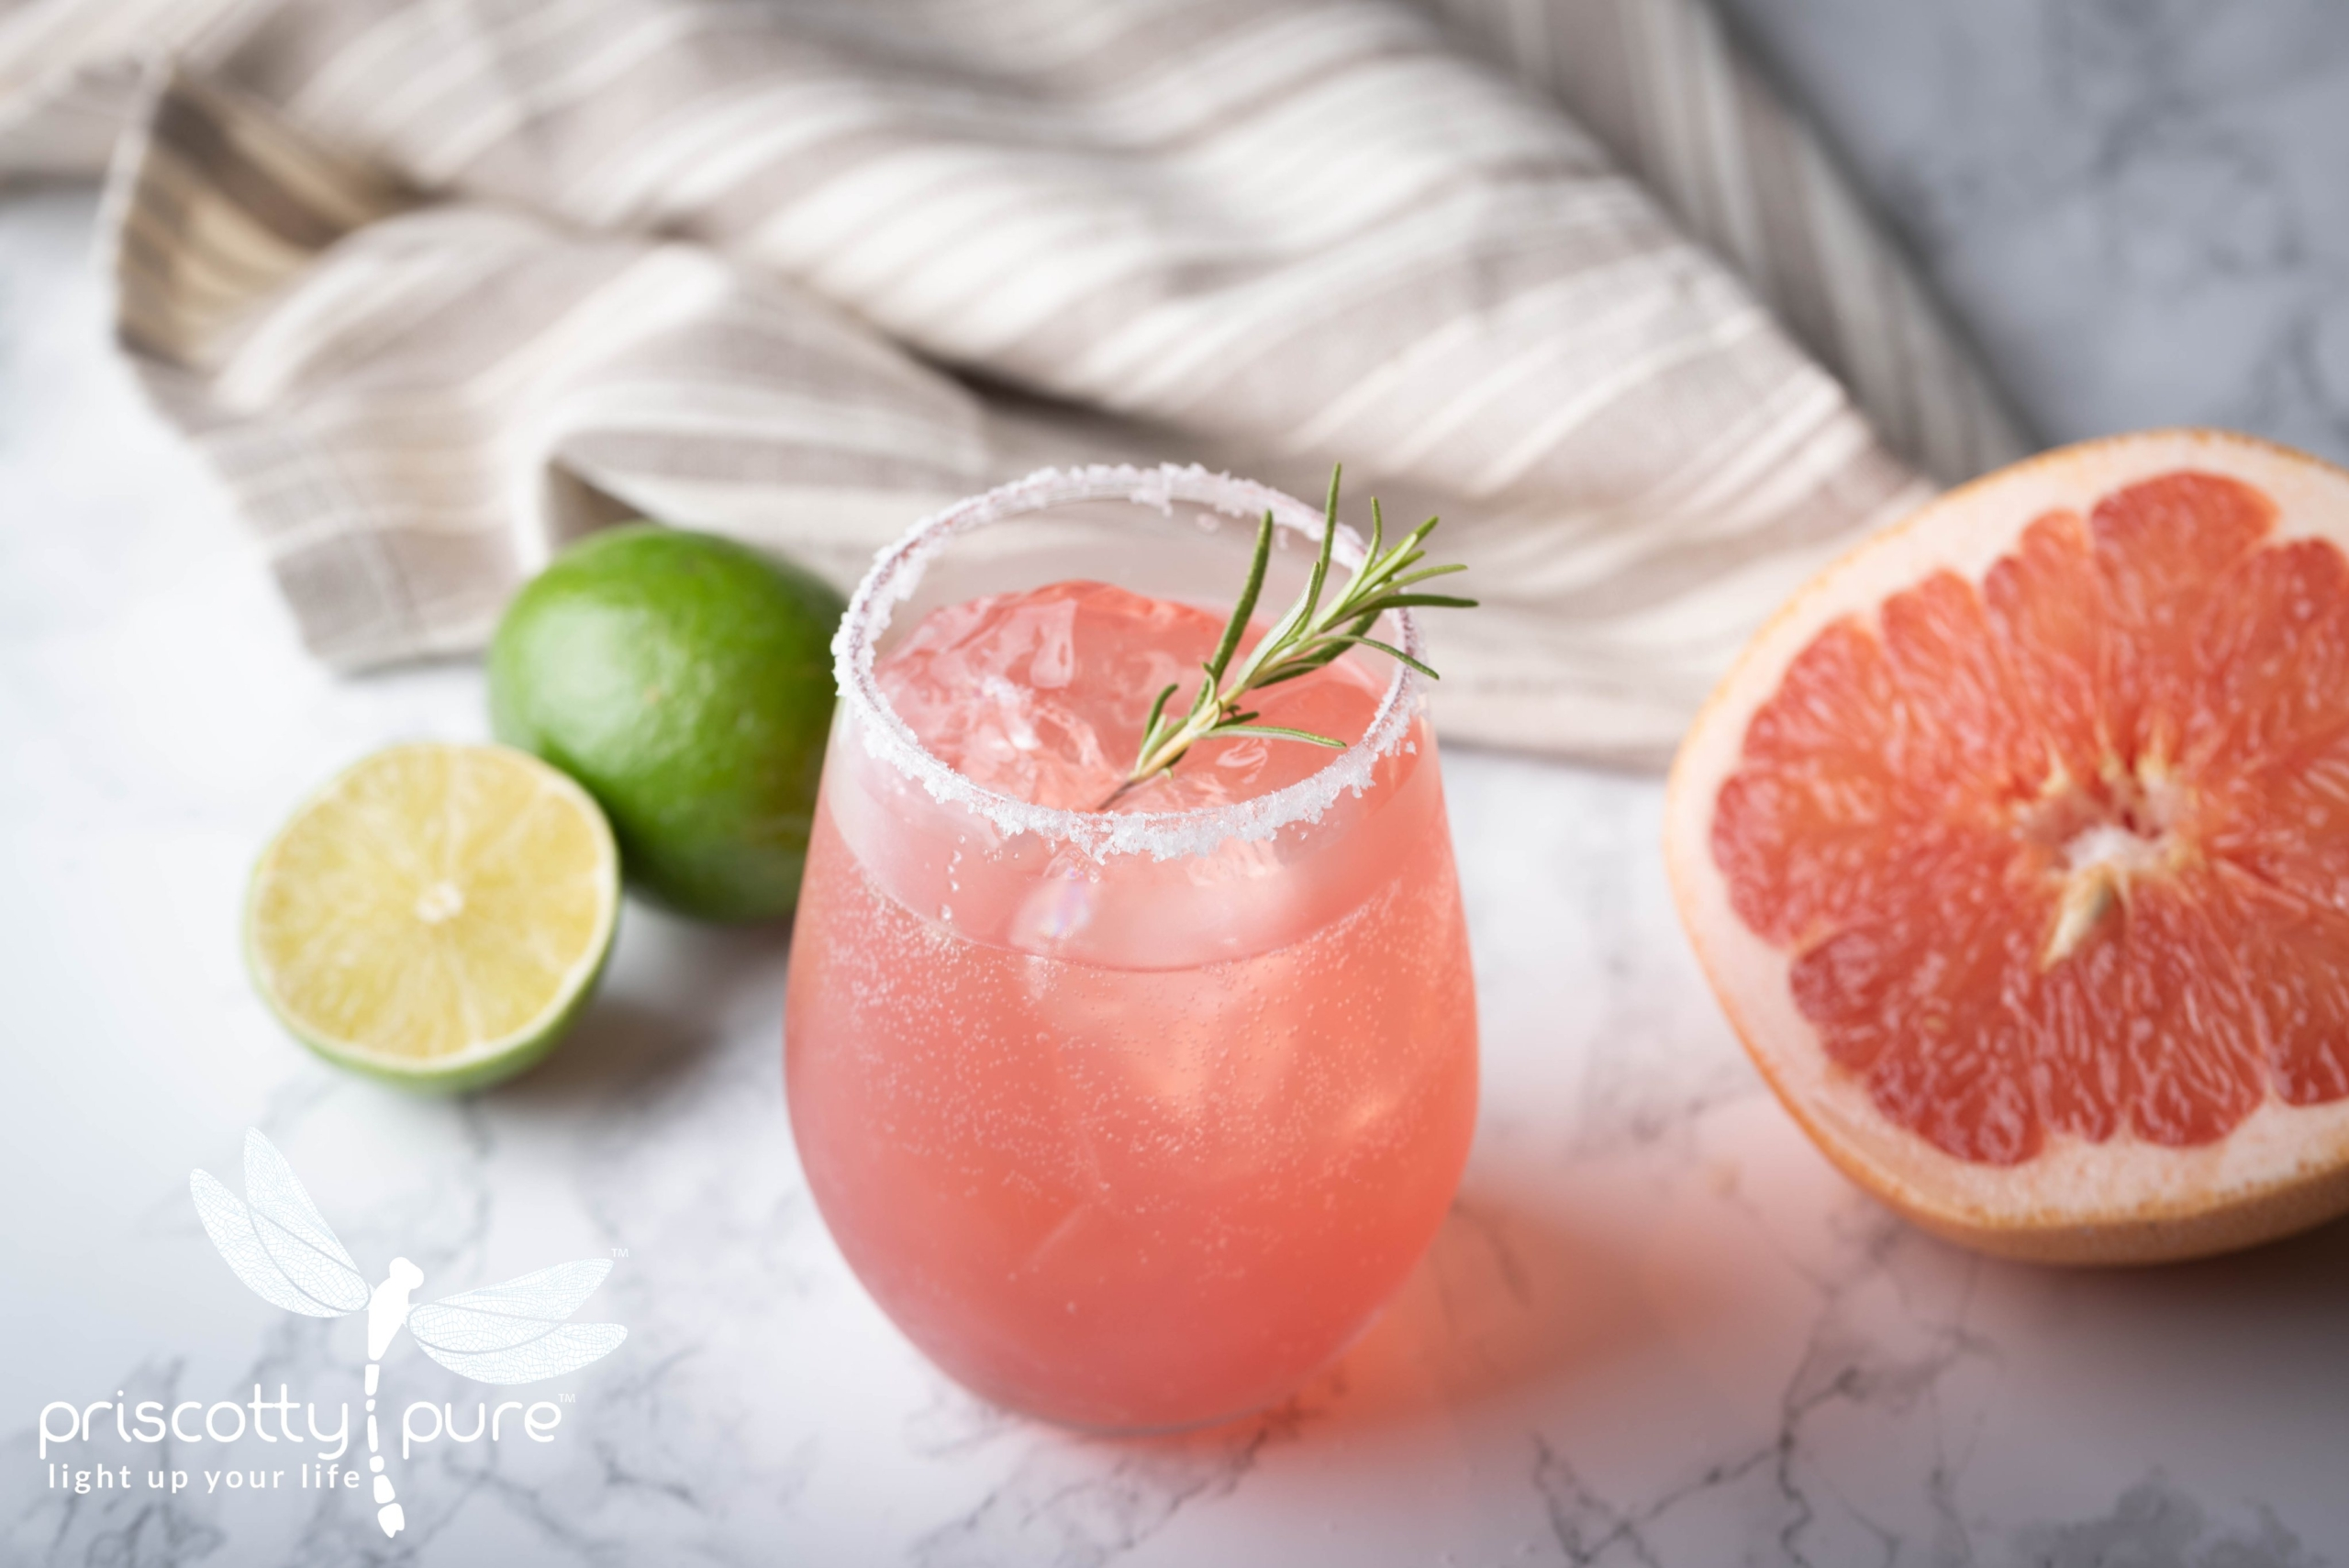 The Priscotty Paloma Cocktail